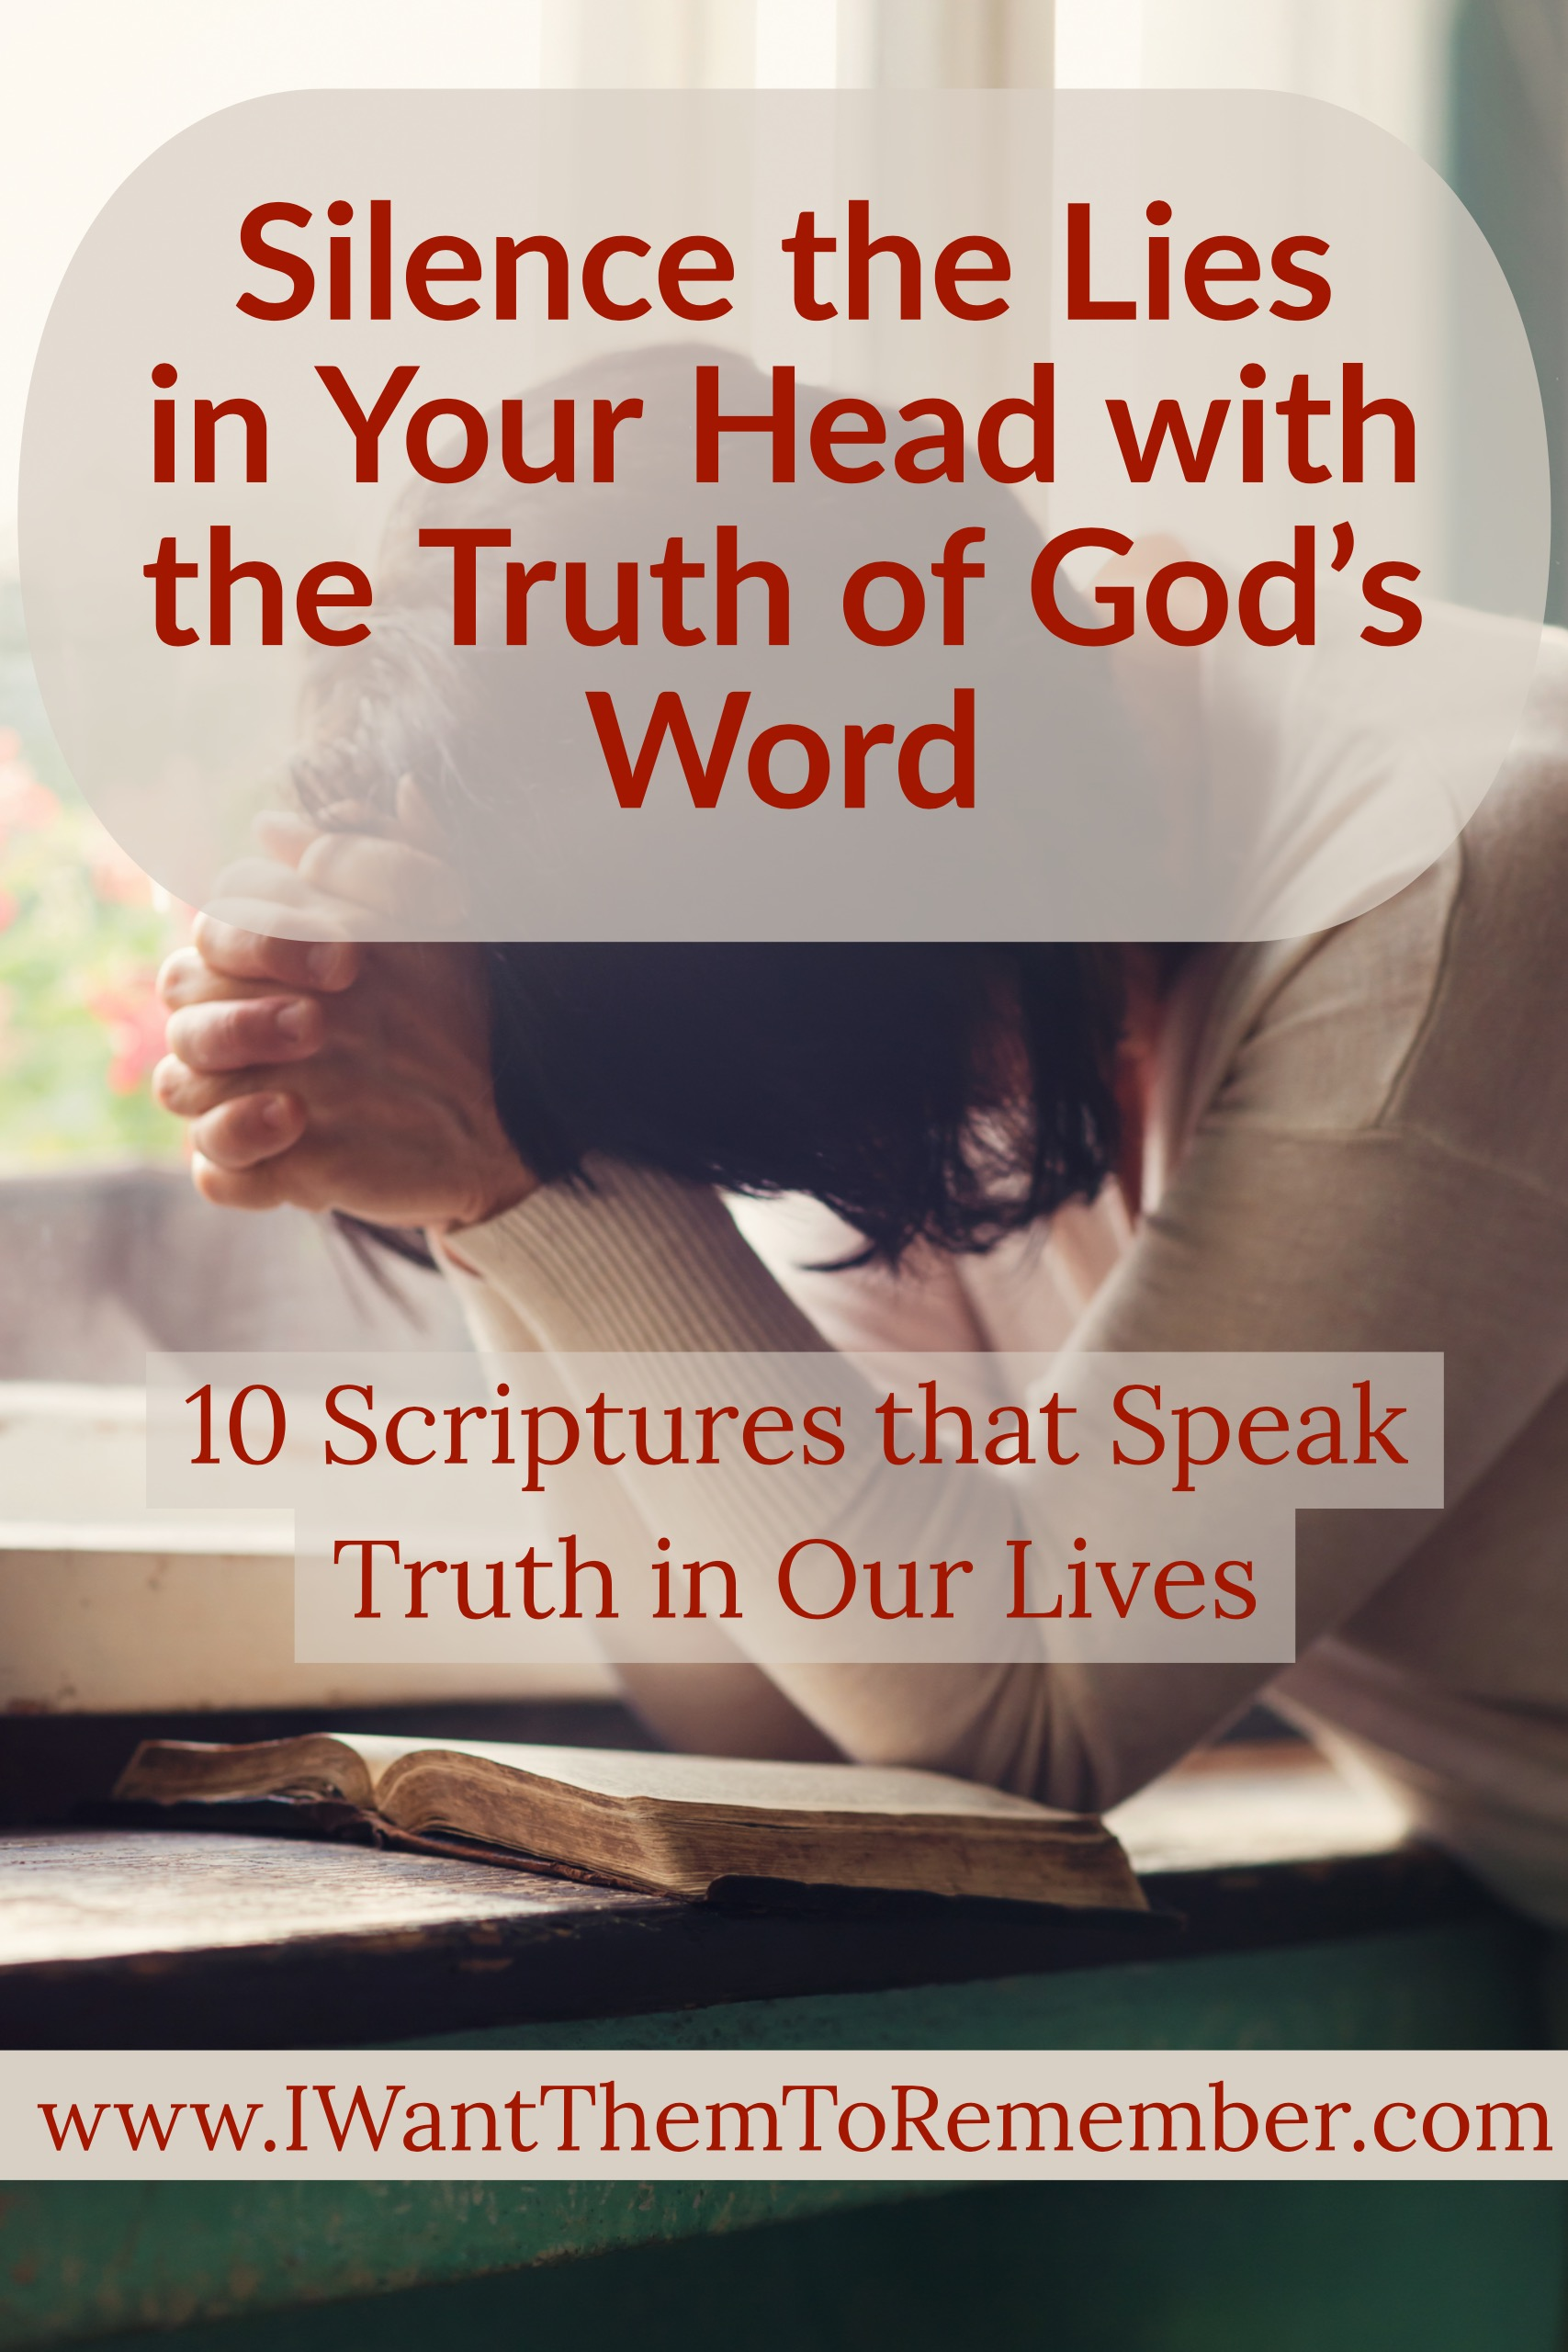 Lies. So many times the voice in our head does not tell the truth. Instead, the negative words we repeat in our mind over and over that continue to bring us down come straight from the father of lies. Instead of repeating the lies to ourselves, we must rely on the truth of God's Word.